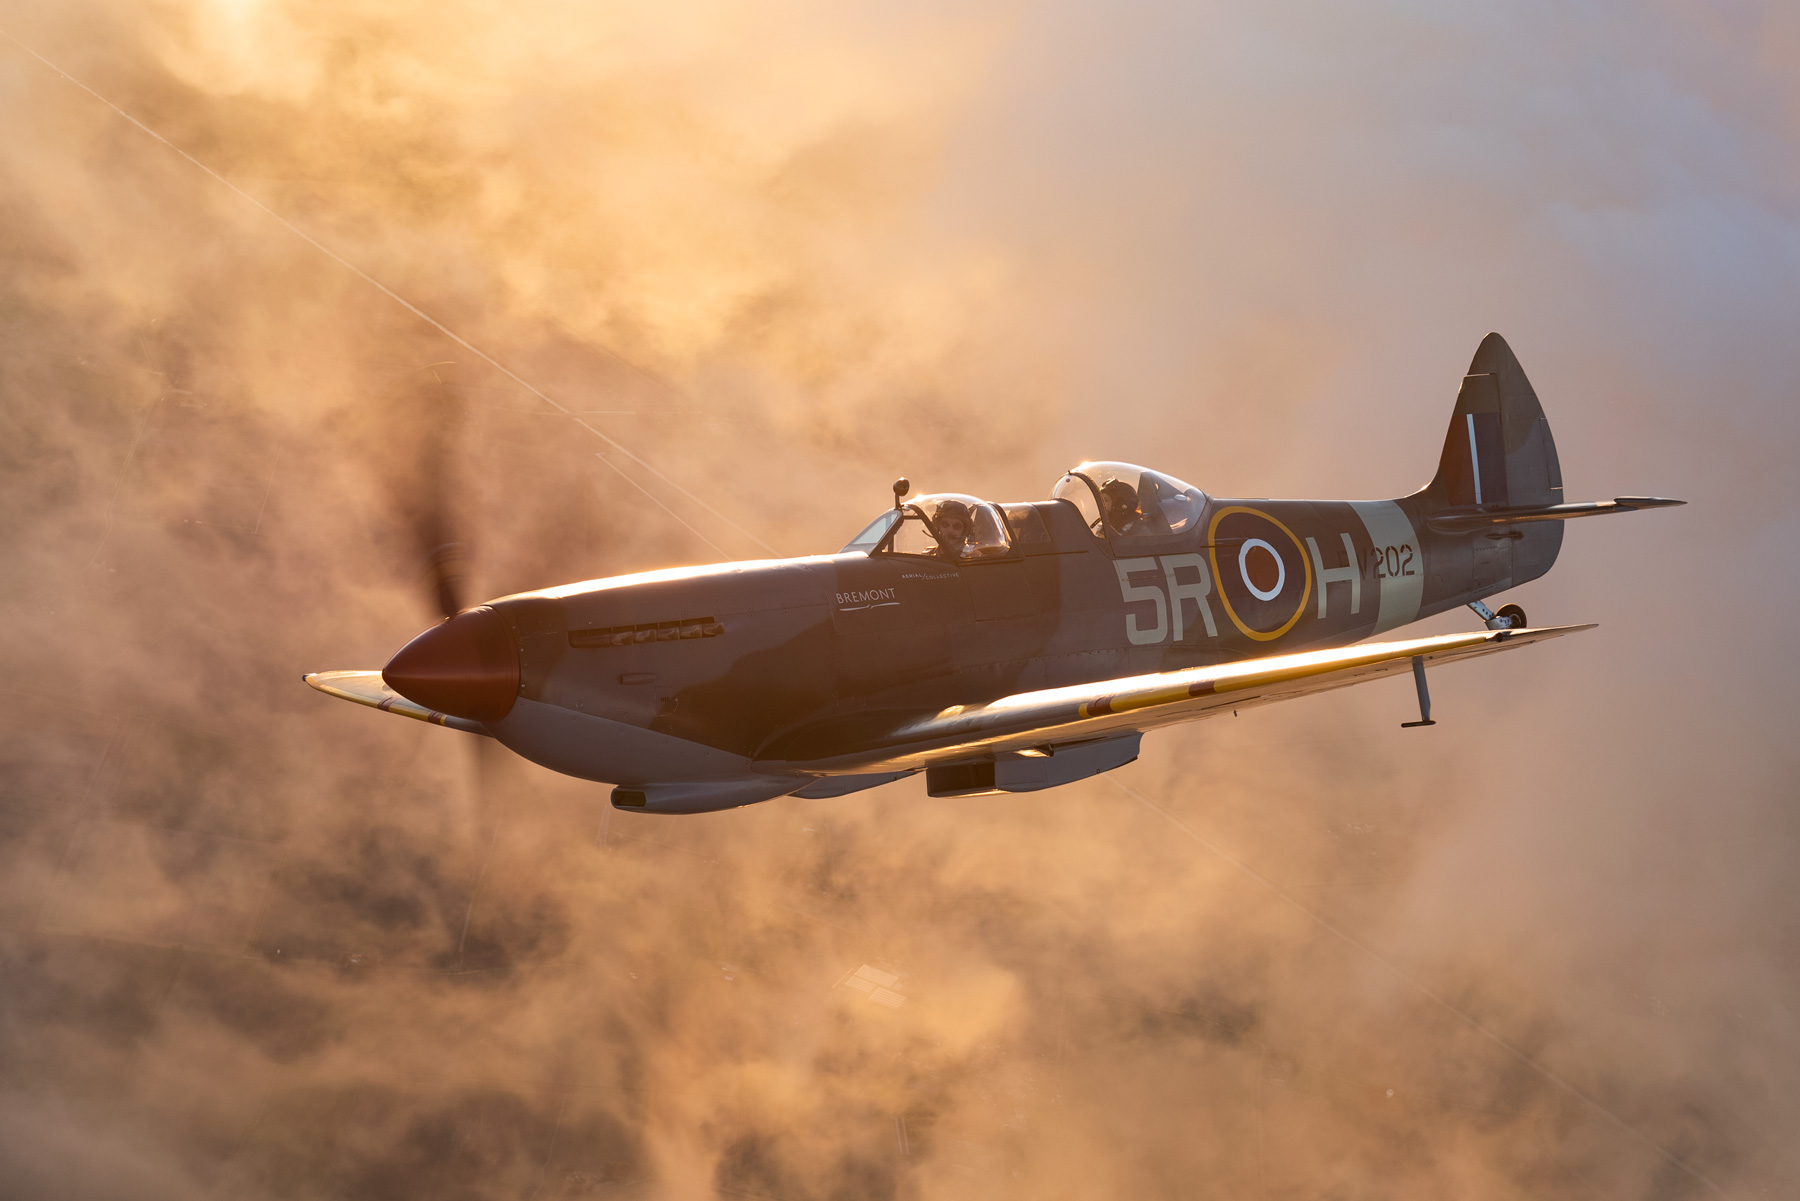 ARCo-Spitfire-PV202-Gallery_above-the-clouds.jpg